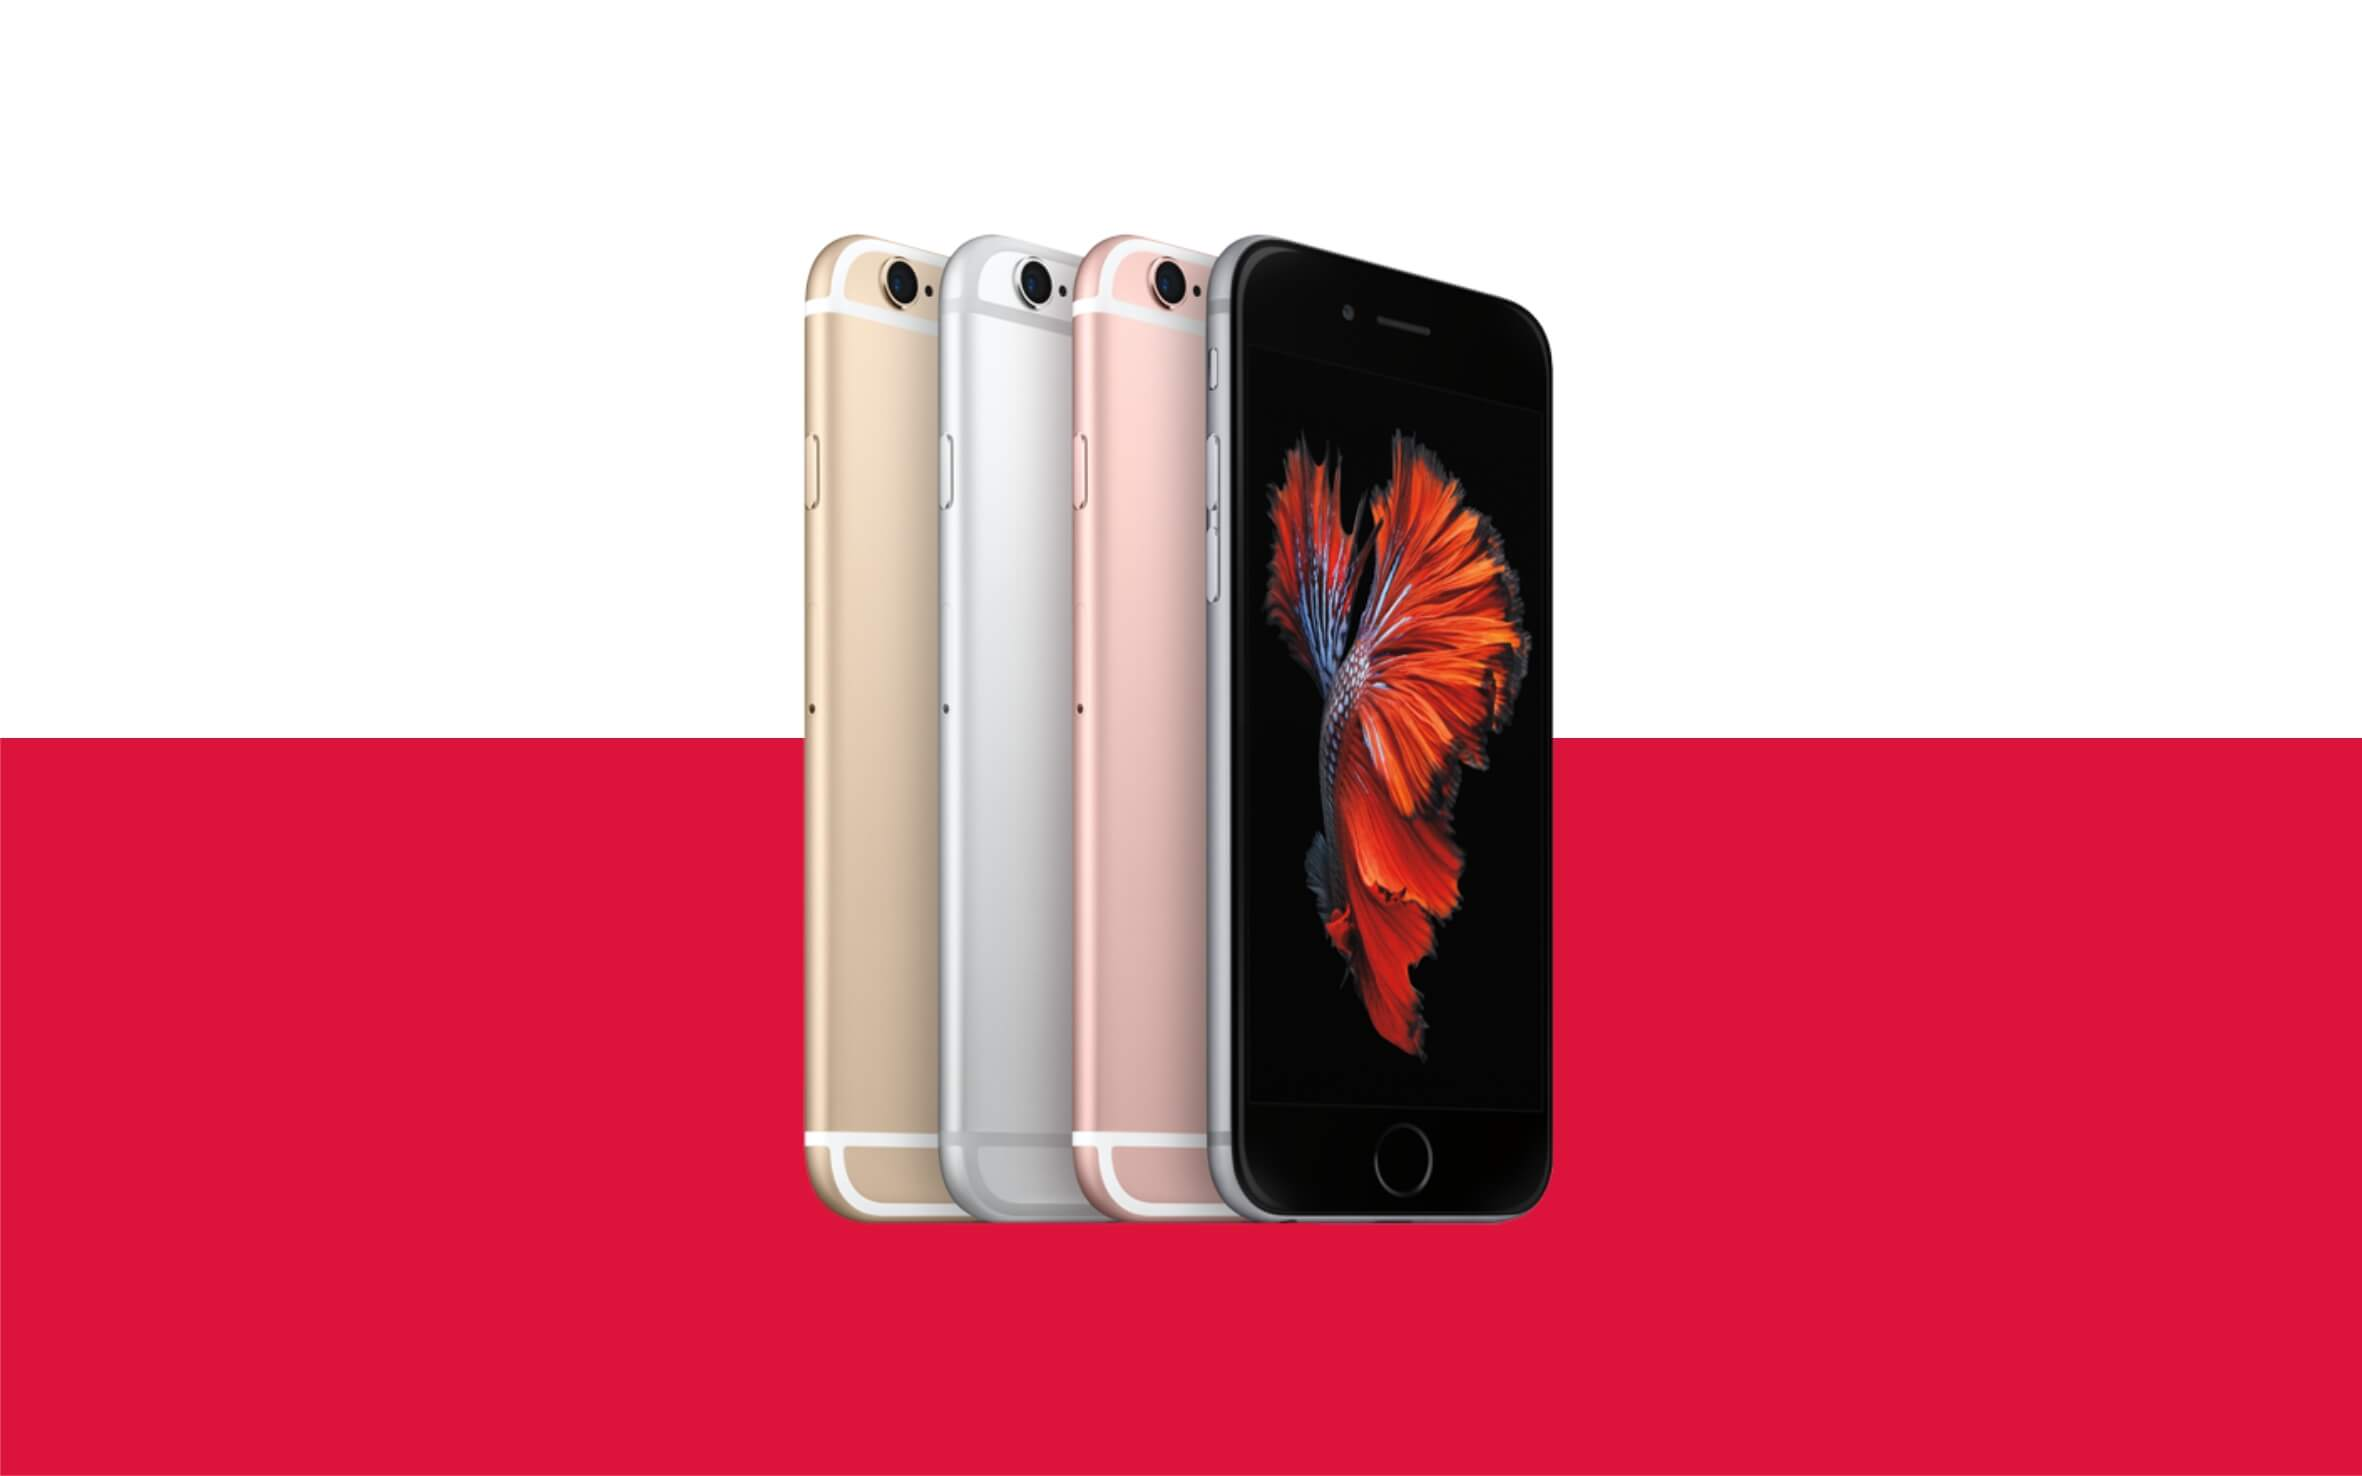 Data premiery iPhone 6s i 6s Plus w Polsce !